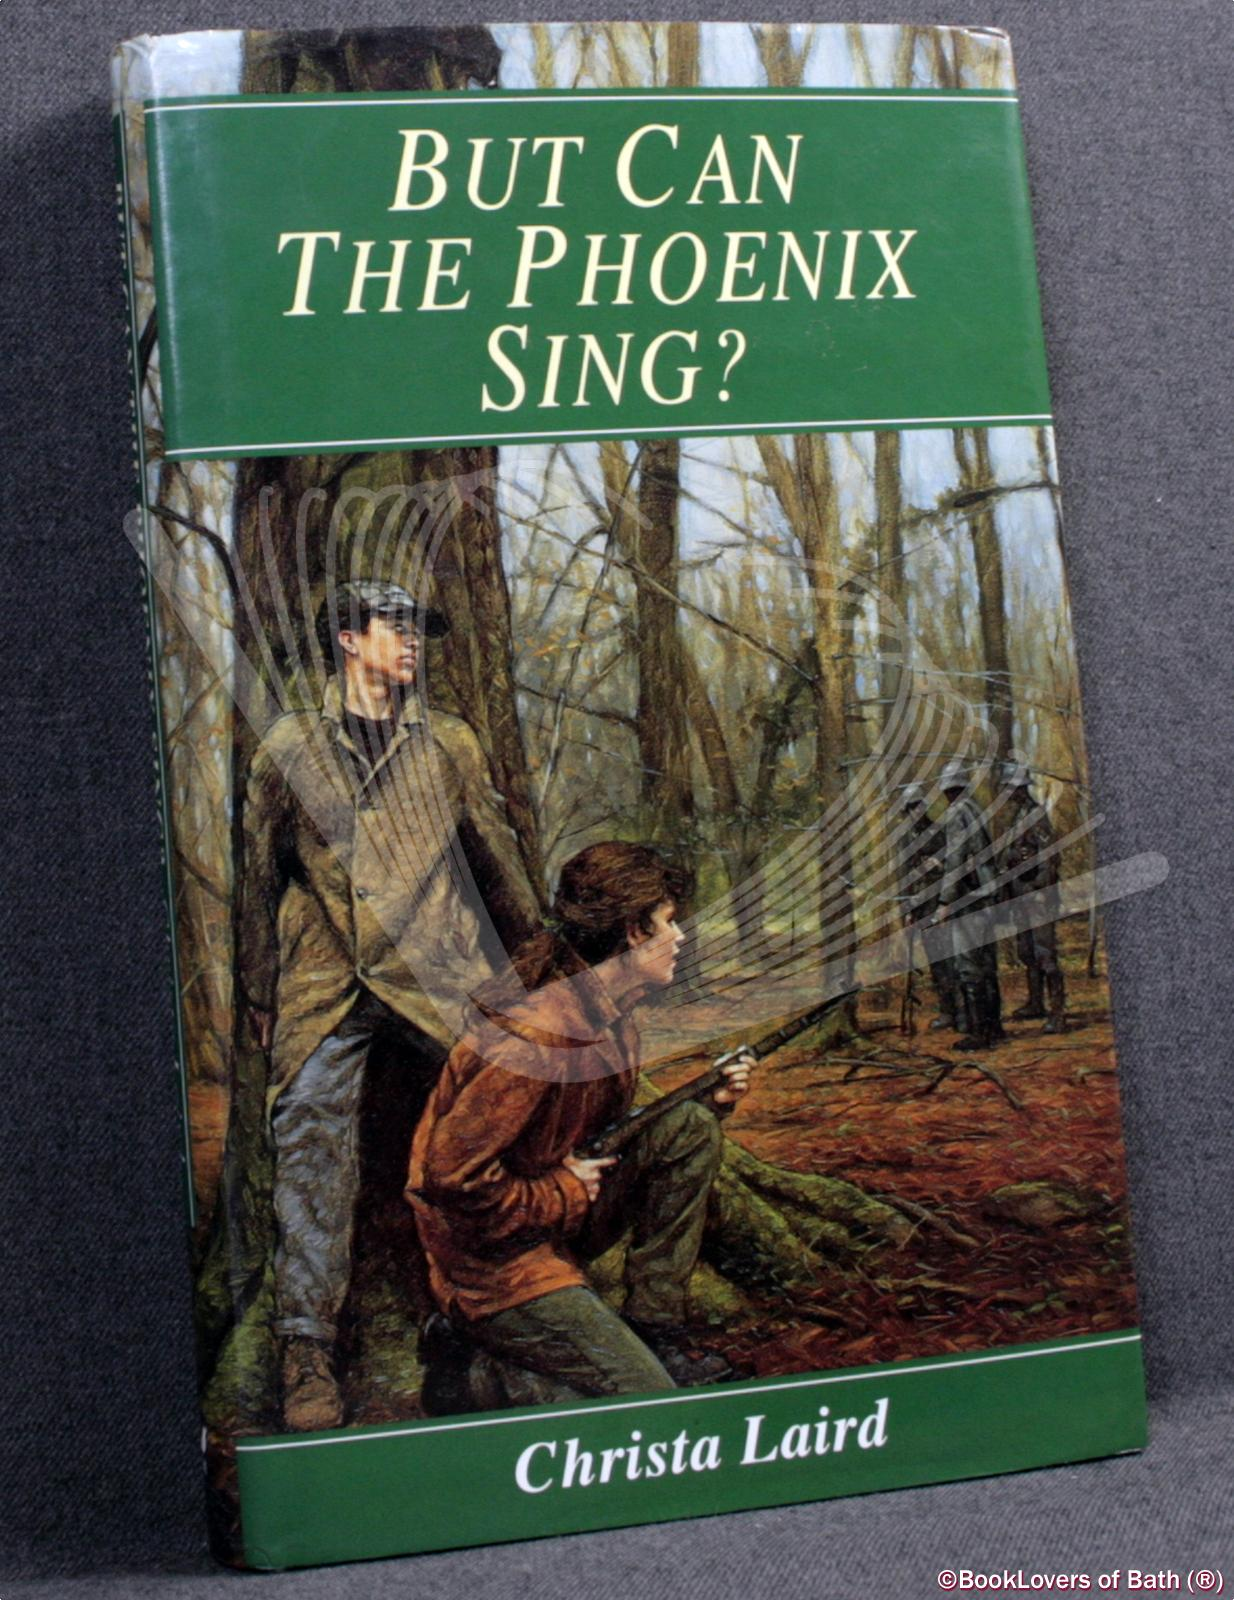 But Can The Phoenix Sing - Christa Laird